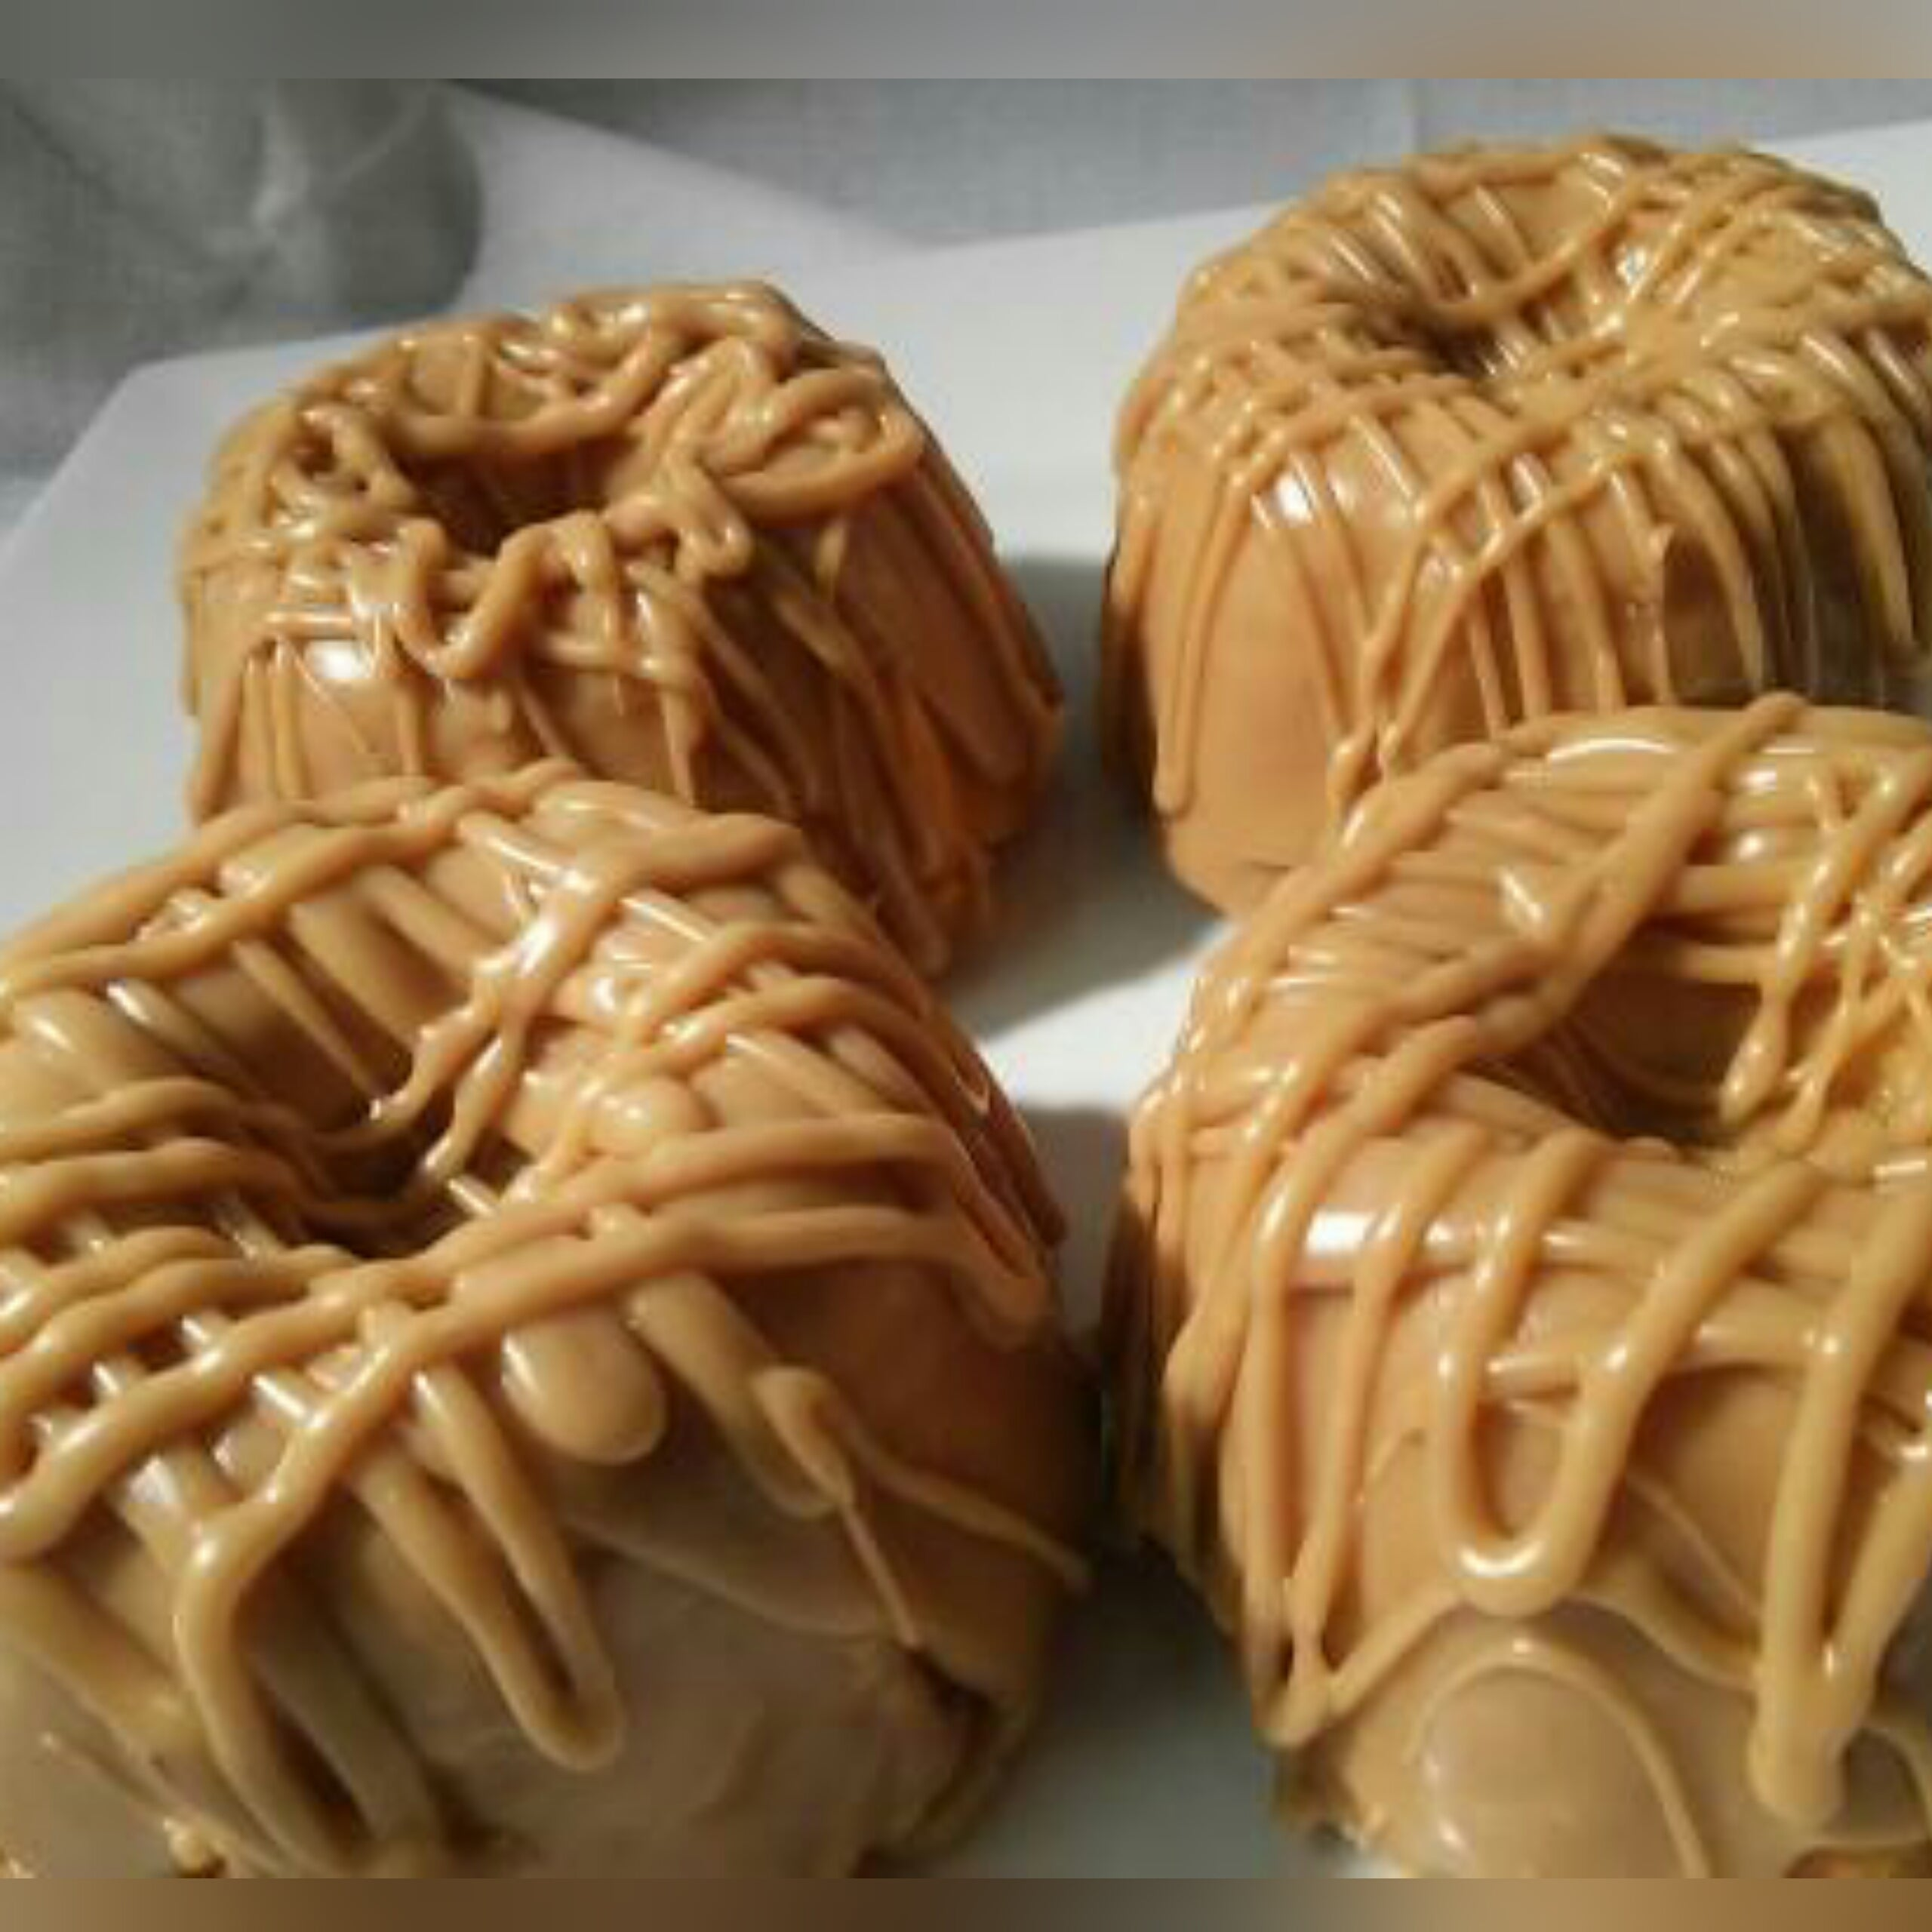 Caramel Obsession Cakes- 4 Individual Personal Cakes